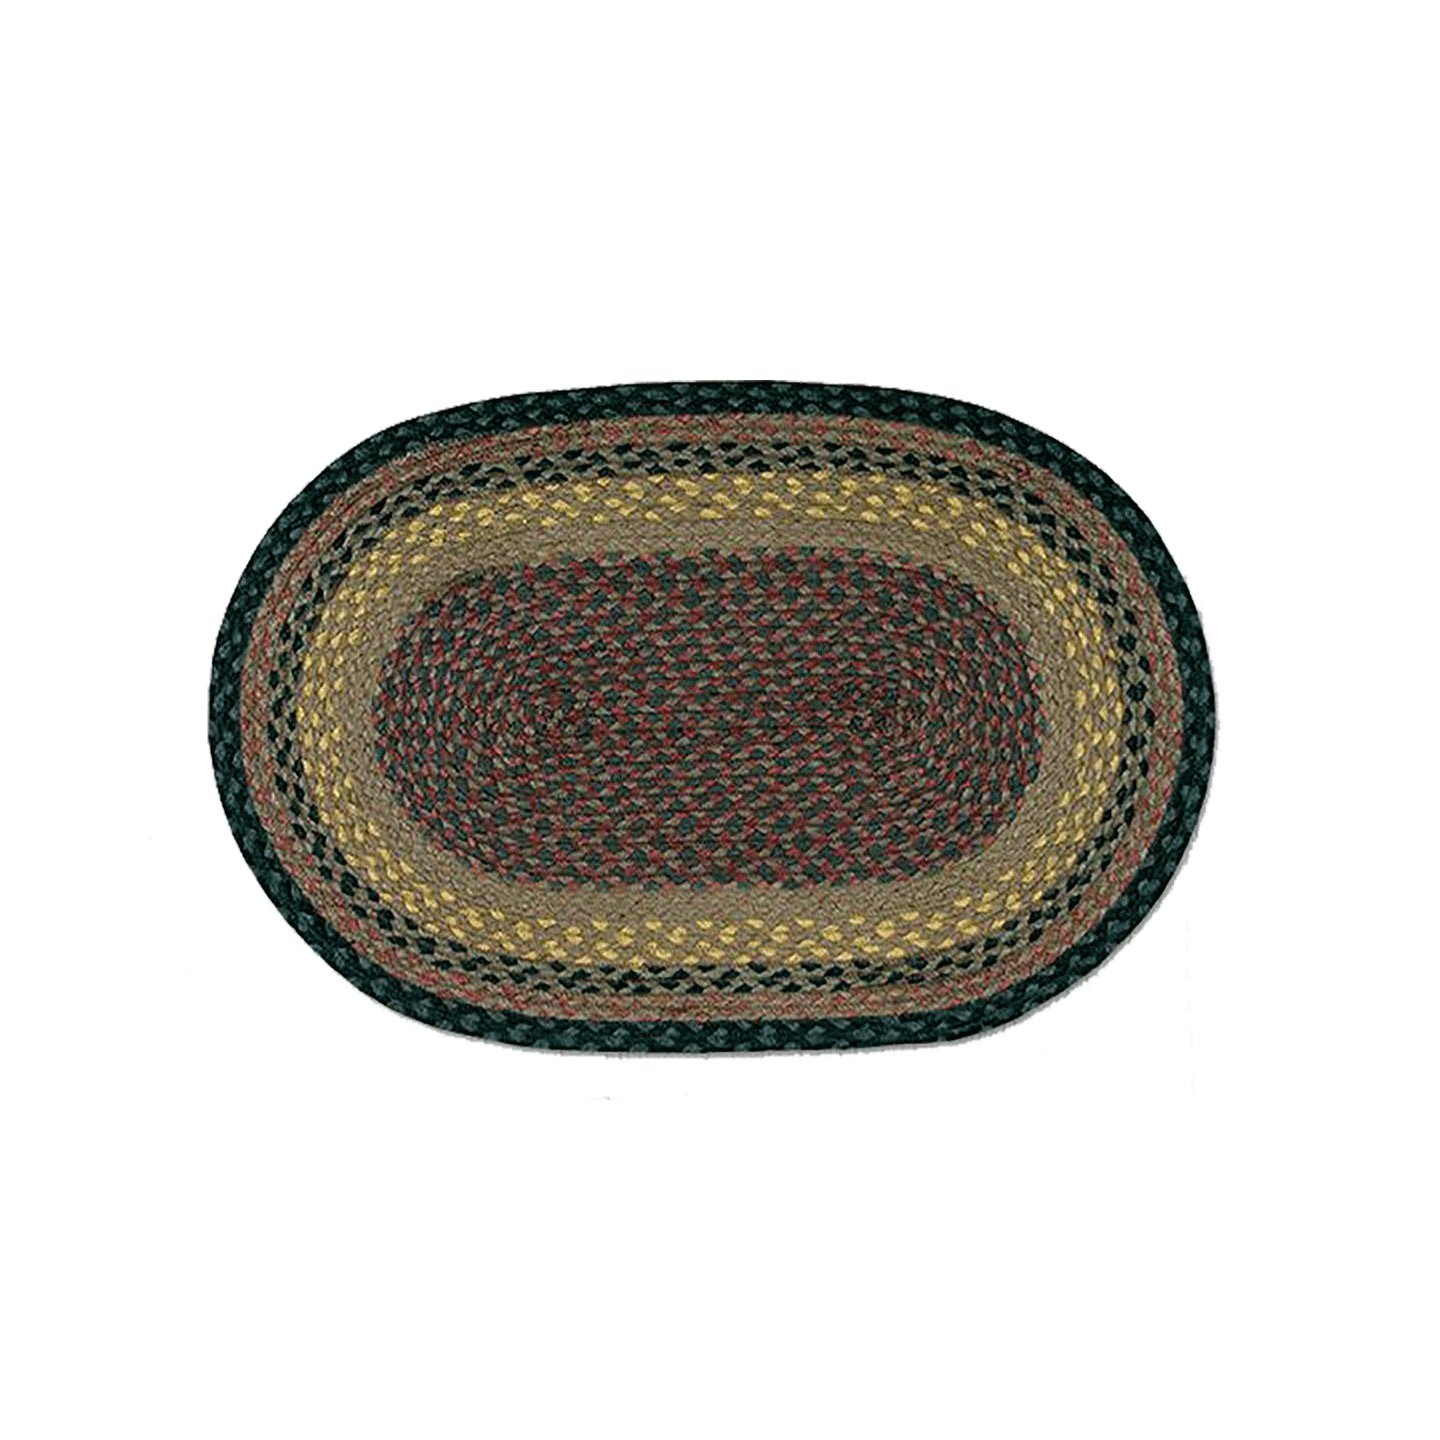 Brown Black Charcoal Oval Braided Rugs Wooden Treasures